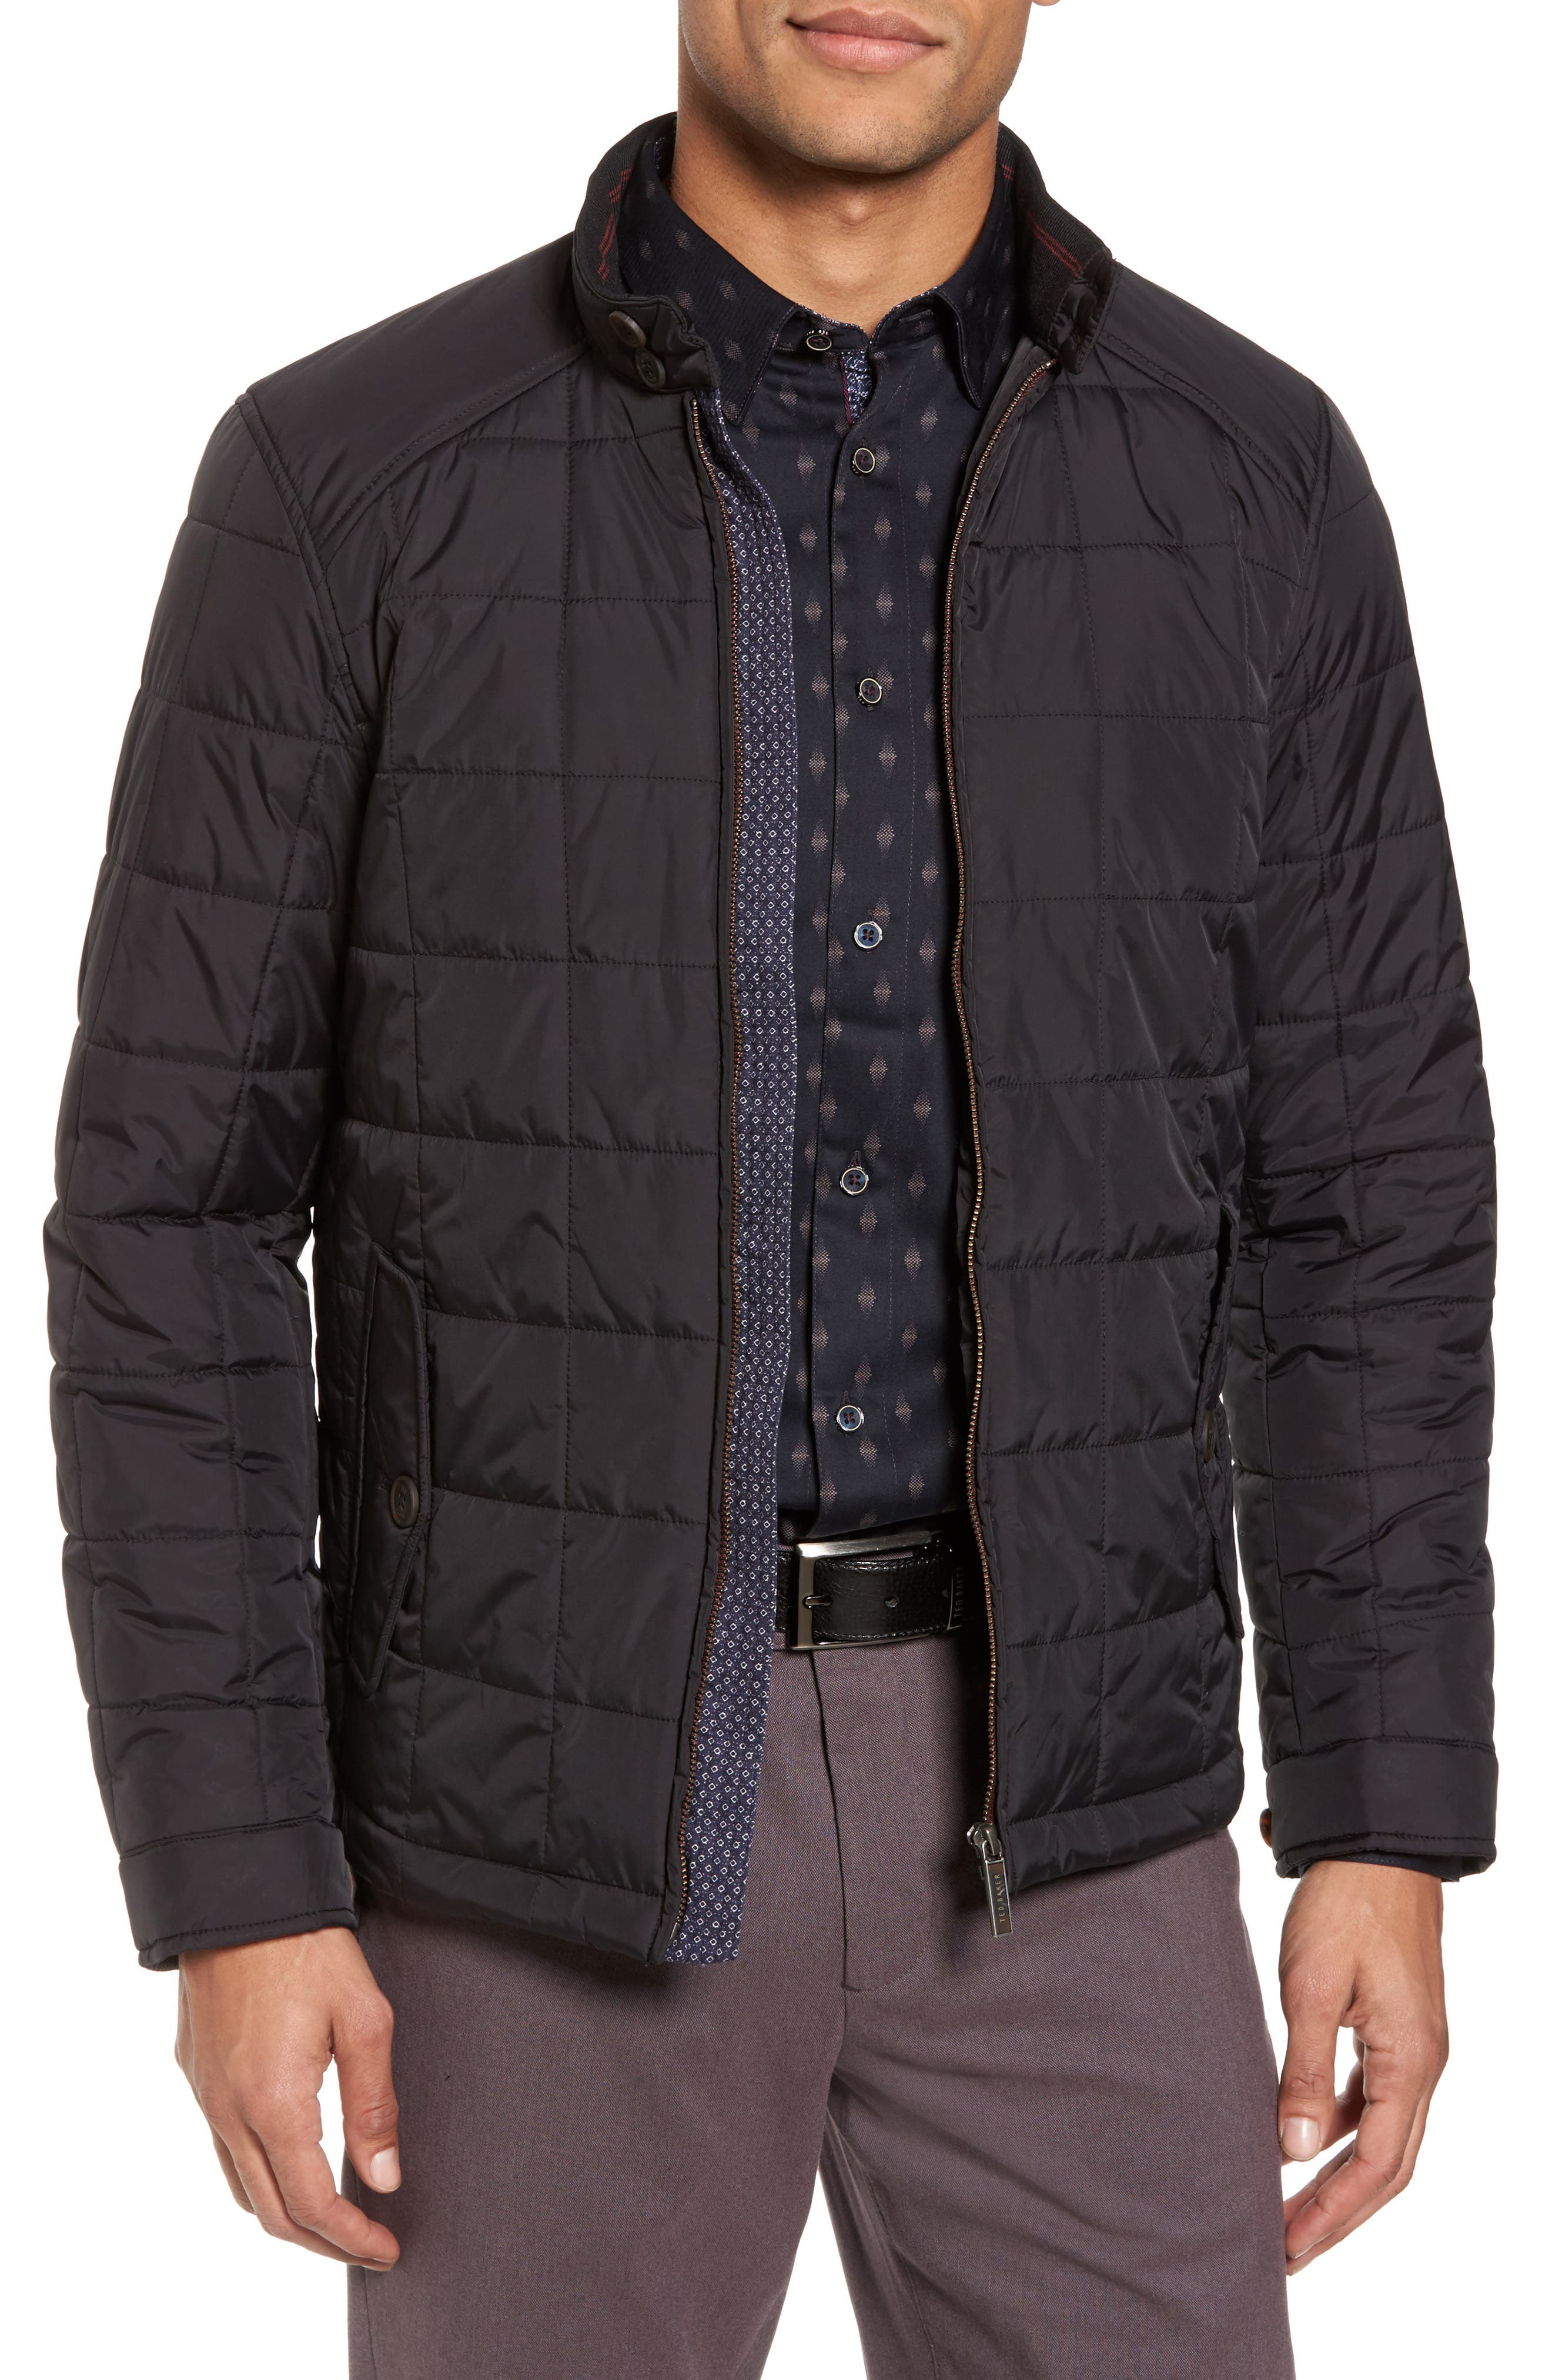 Alees Trim Fit Quilted Jacket,                             Main thumbnail 1, color,                             001